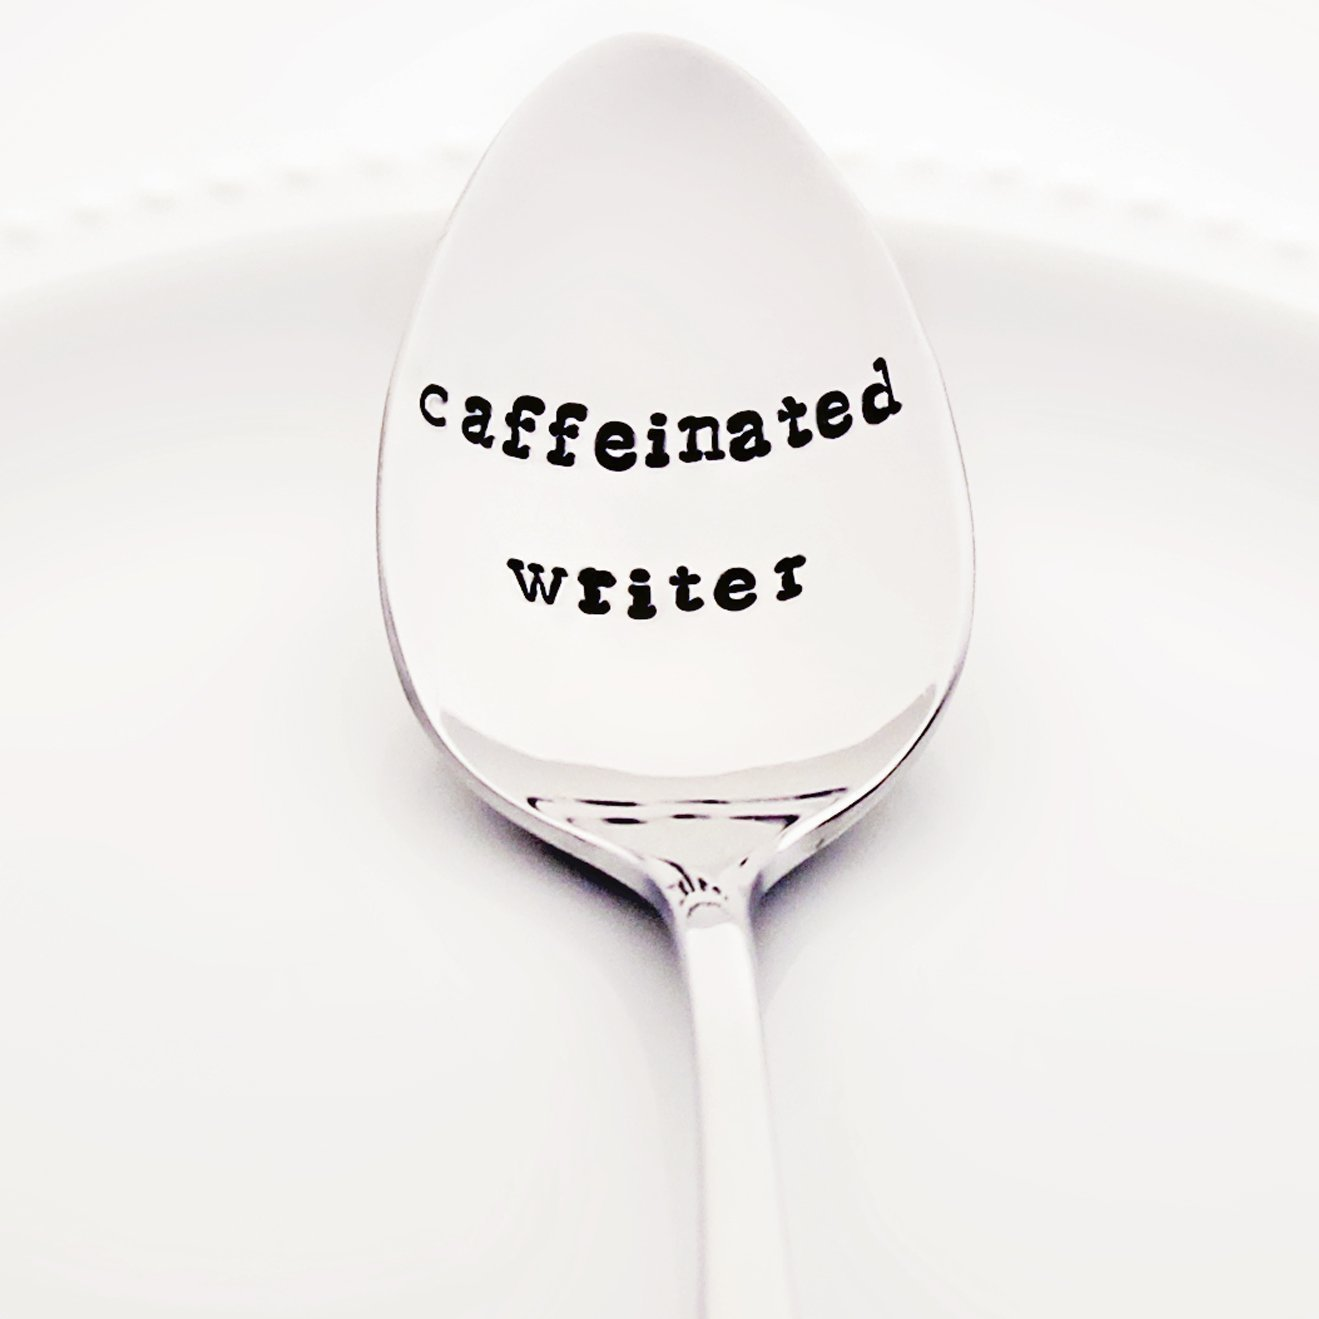 Caffeinated Writer - Stainless Steel Stamped Spoon, Stamped Silverware - Christmas Gifts for Writers